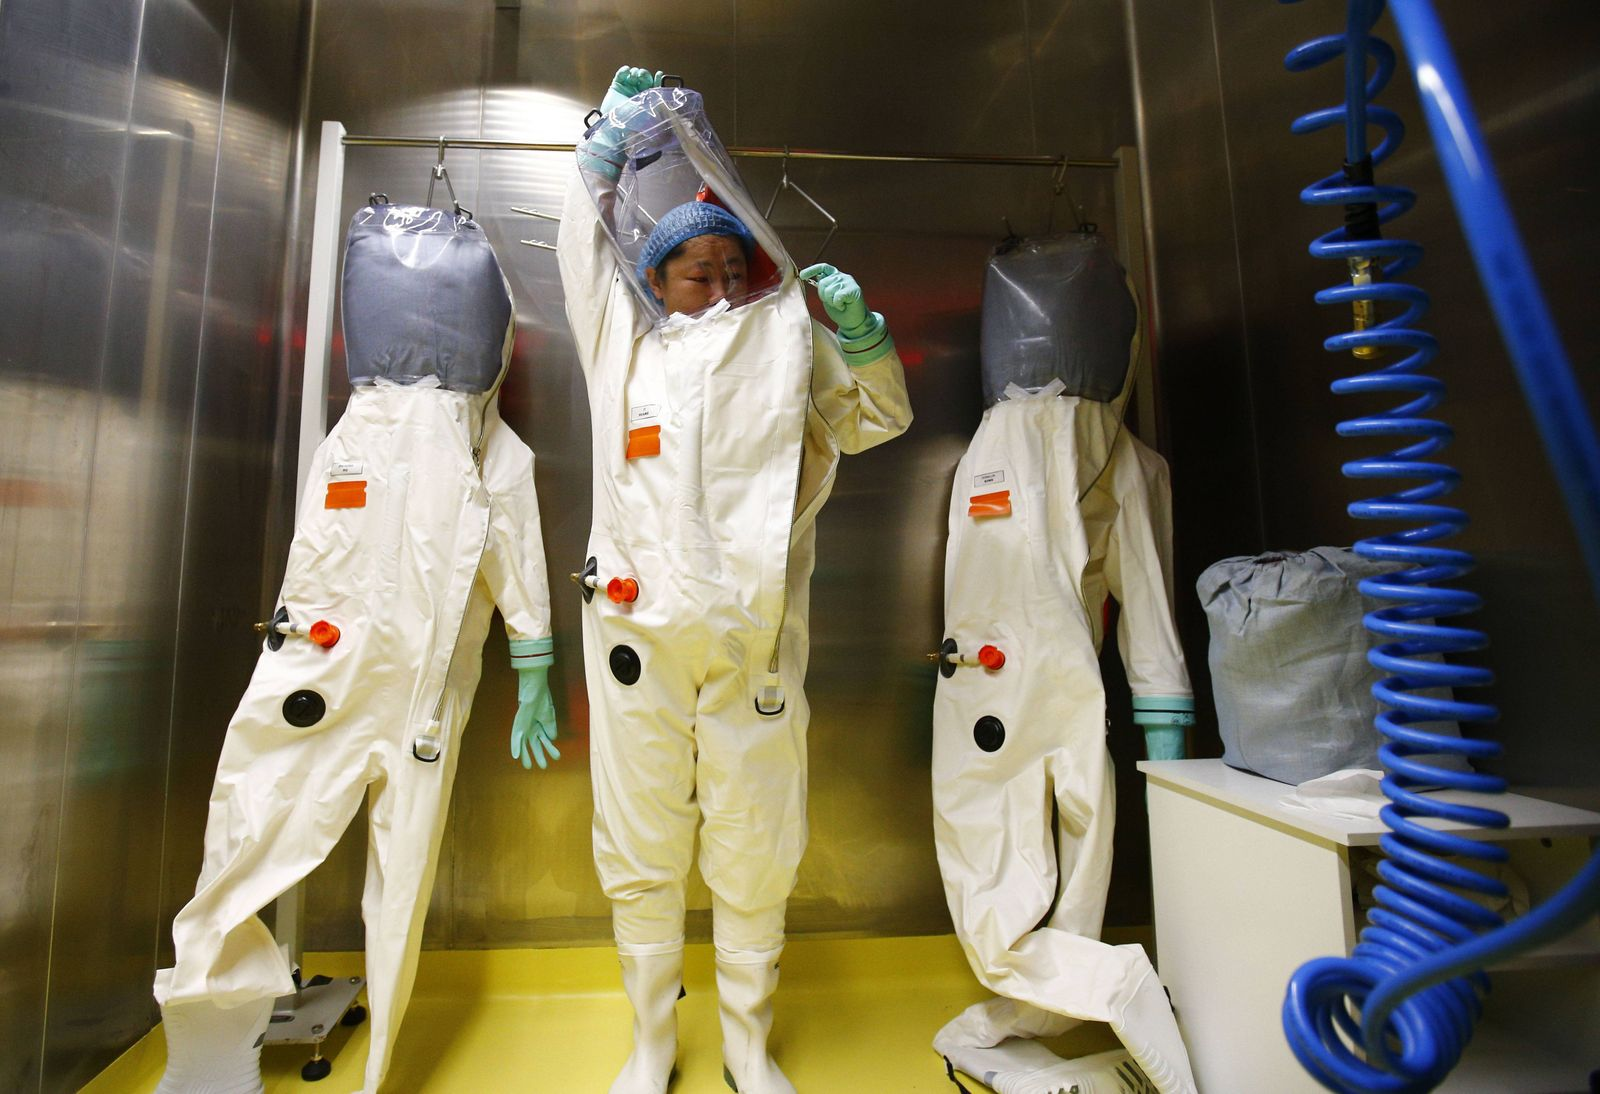 (150131) -- WUHAN, A researcher puts on a protective suit before entering the newly-completed lab in Wuhan, capital o